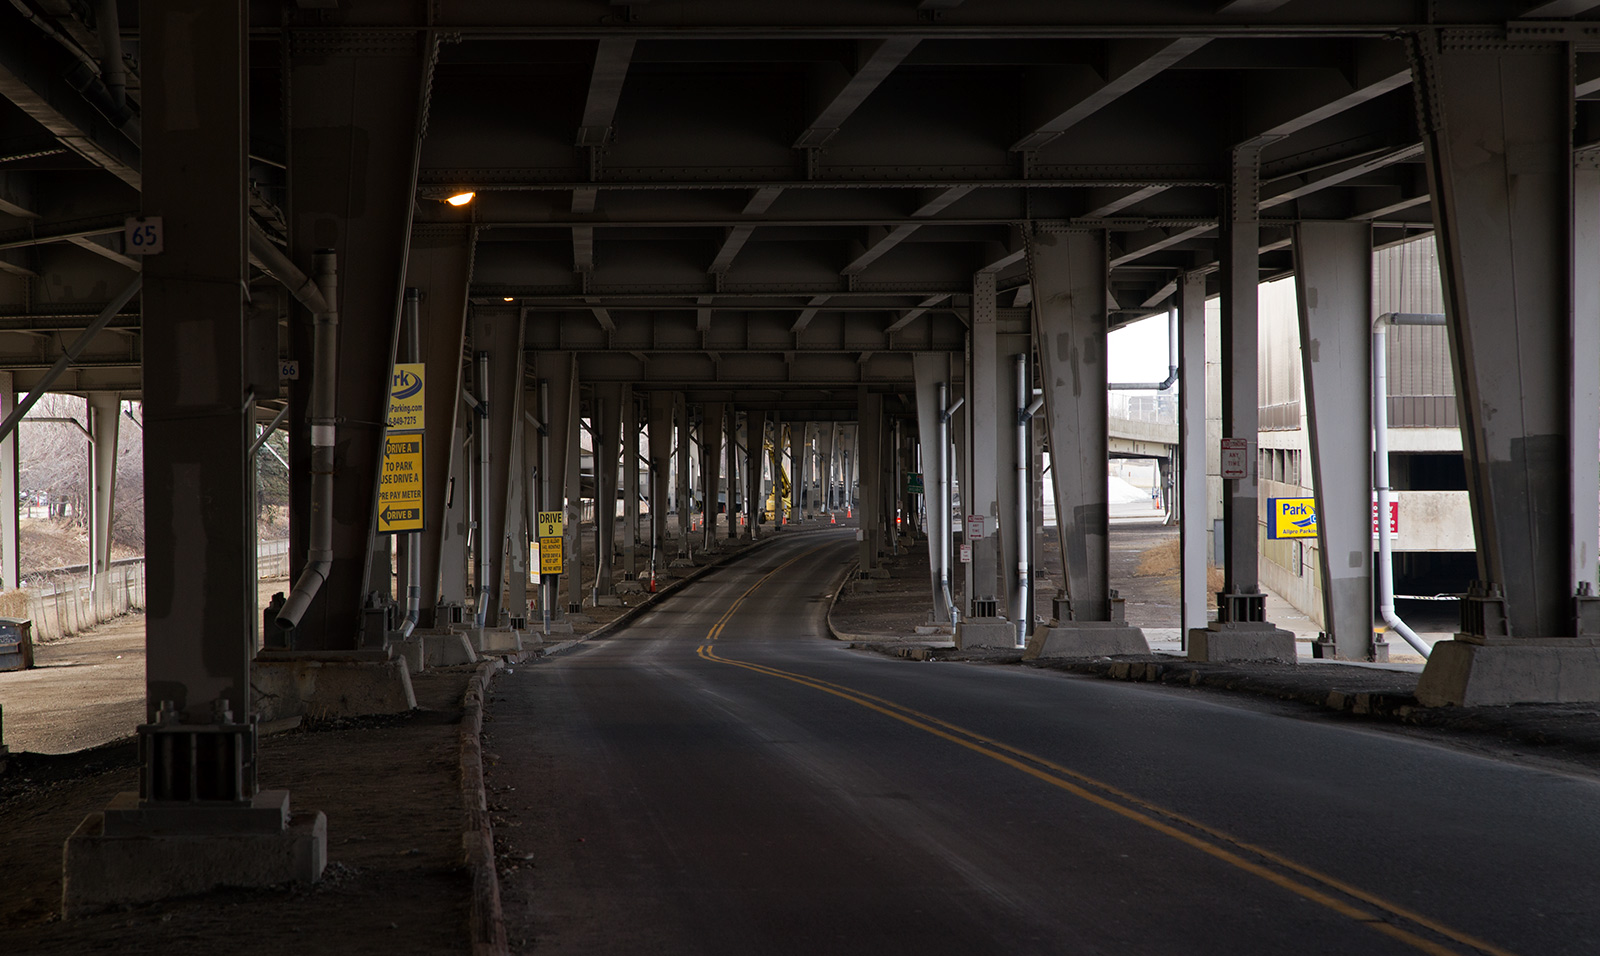 20140505. Under the I-190 in Buffalo - reminicent of being under the Gardiner Expressway in Toronto.